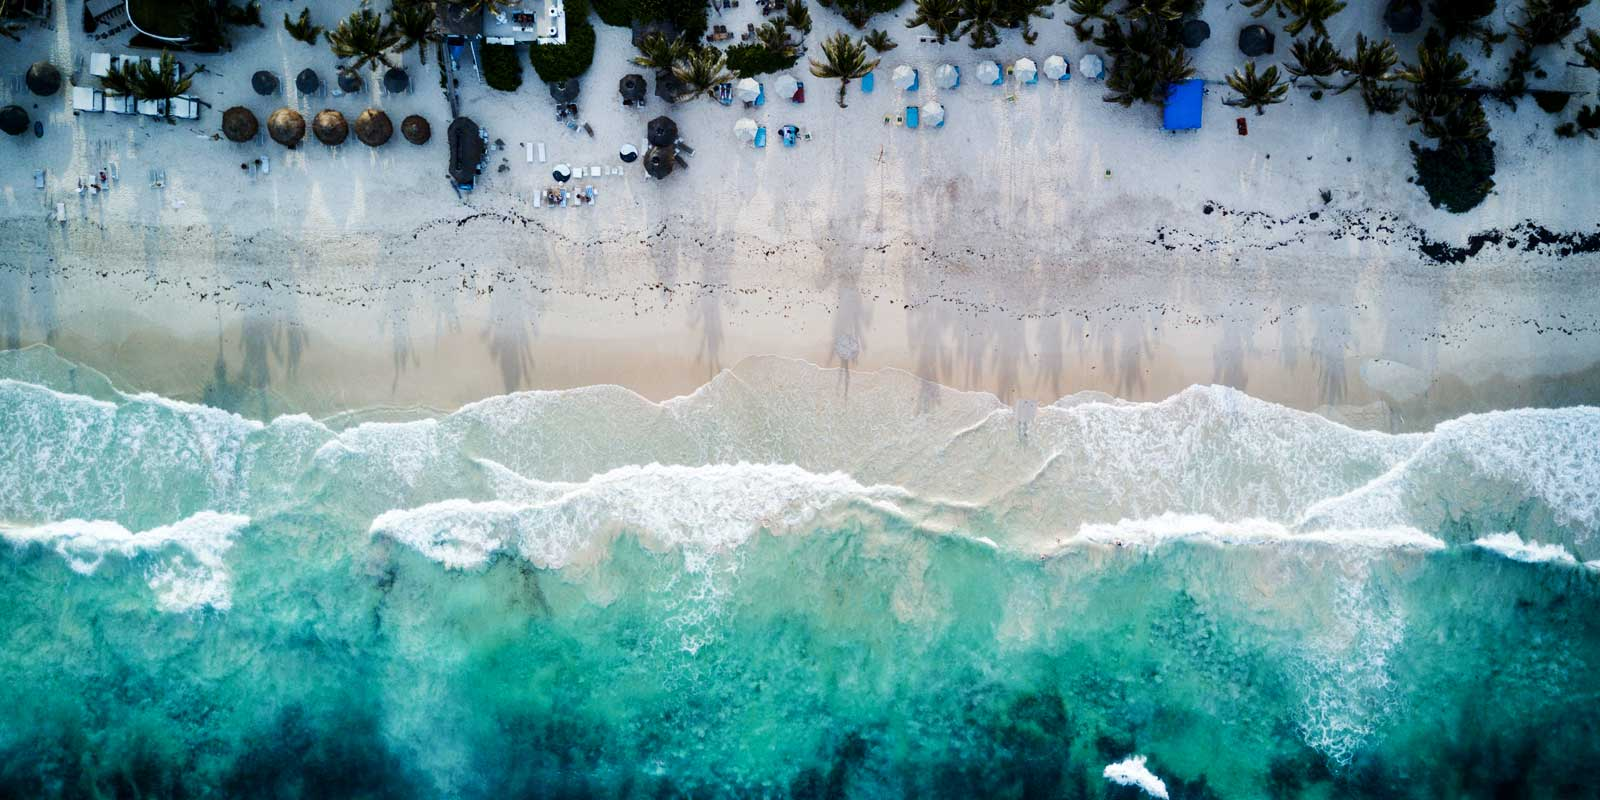 Get awesome aerial photos like this beach scene with a photography drone.